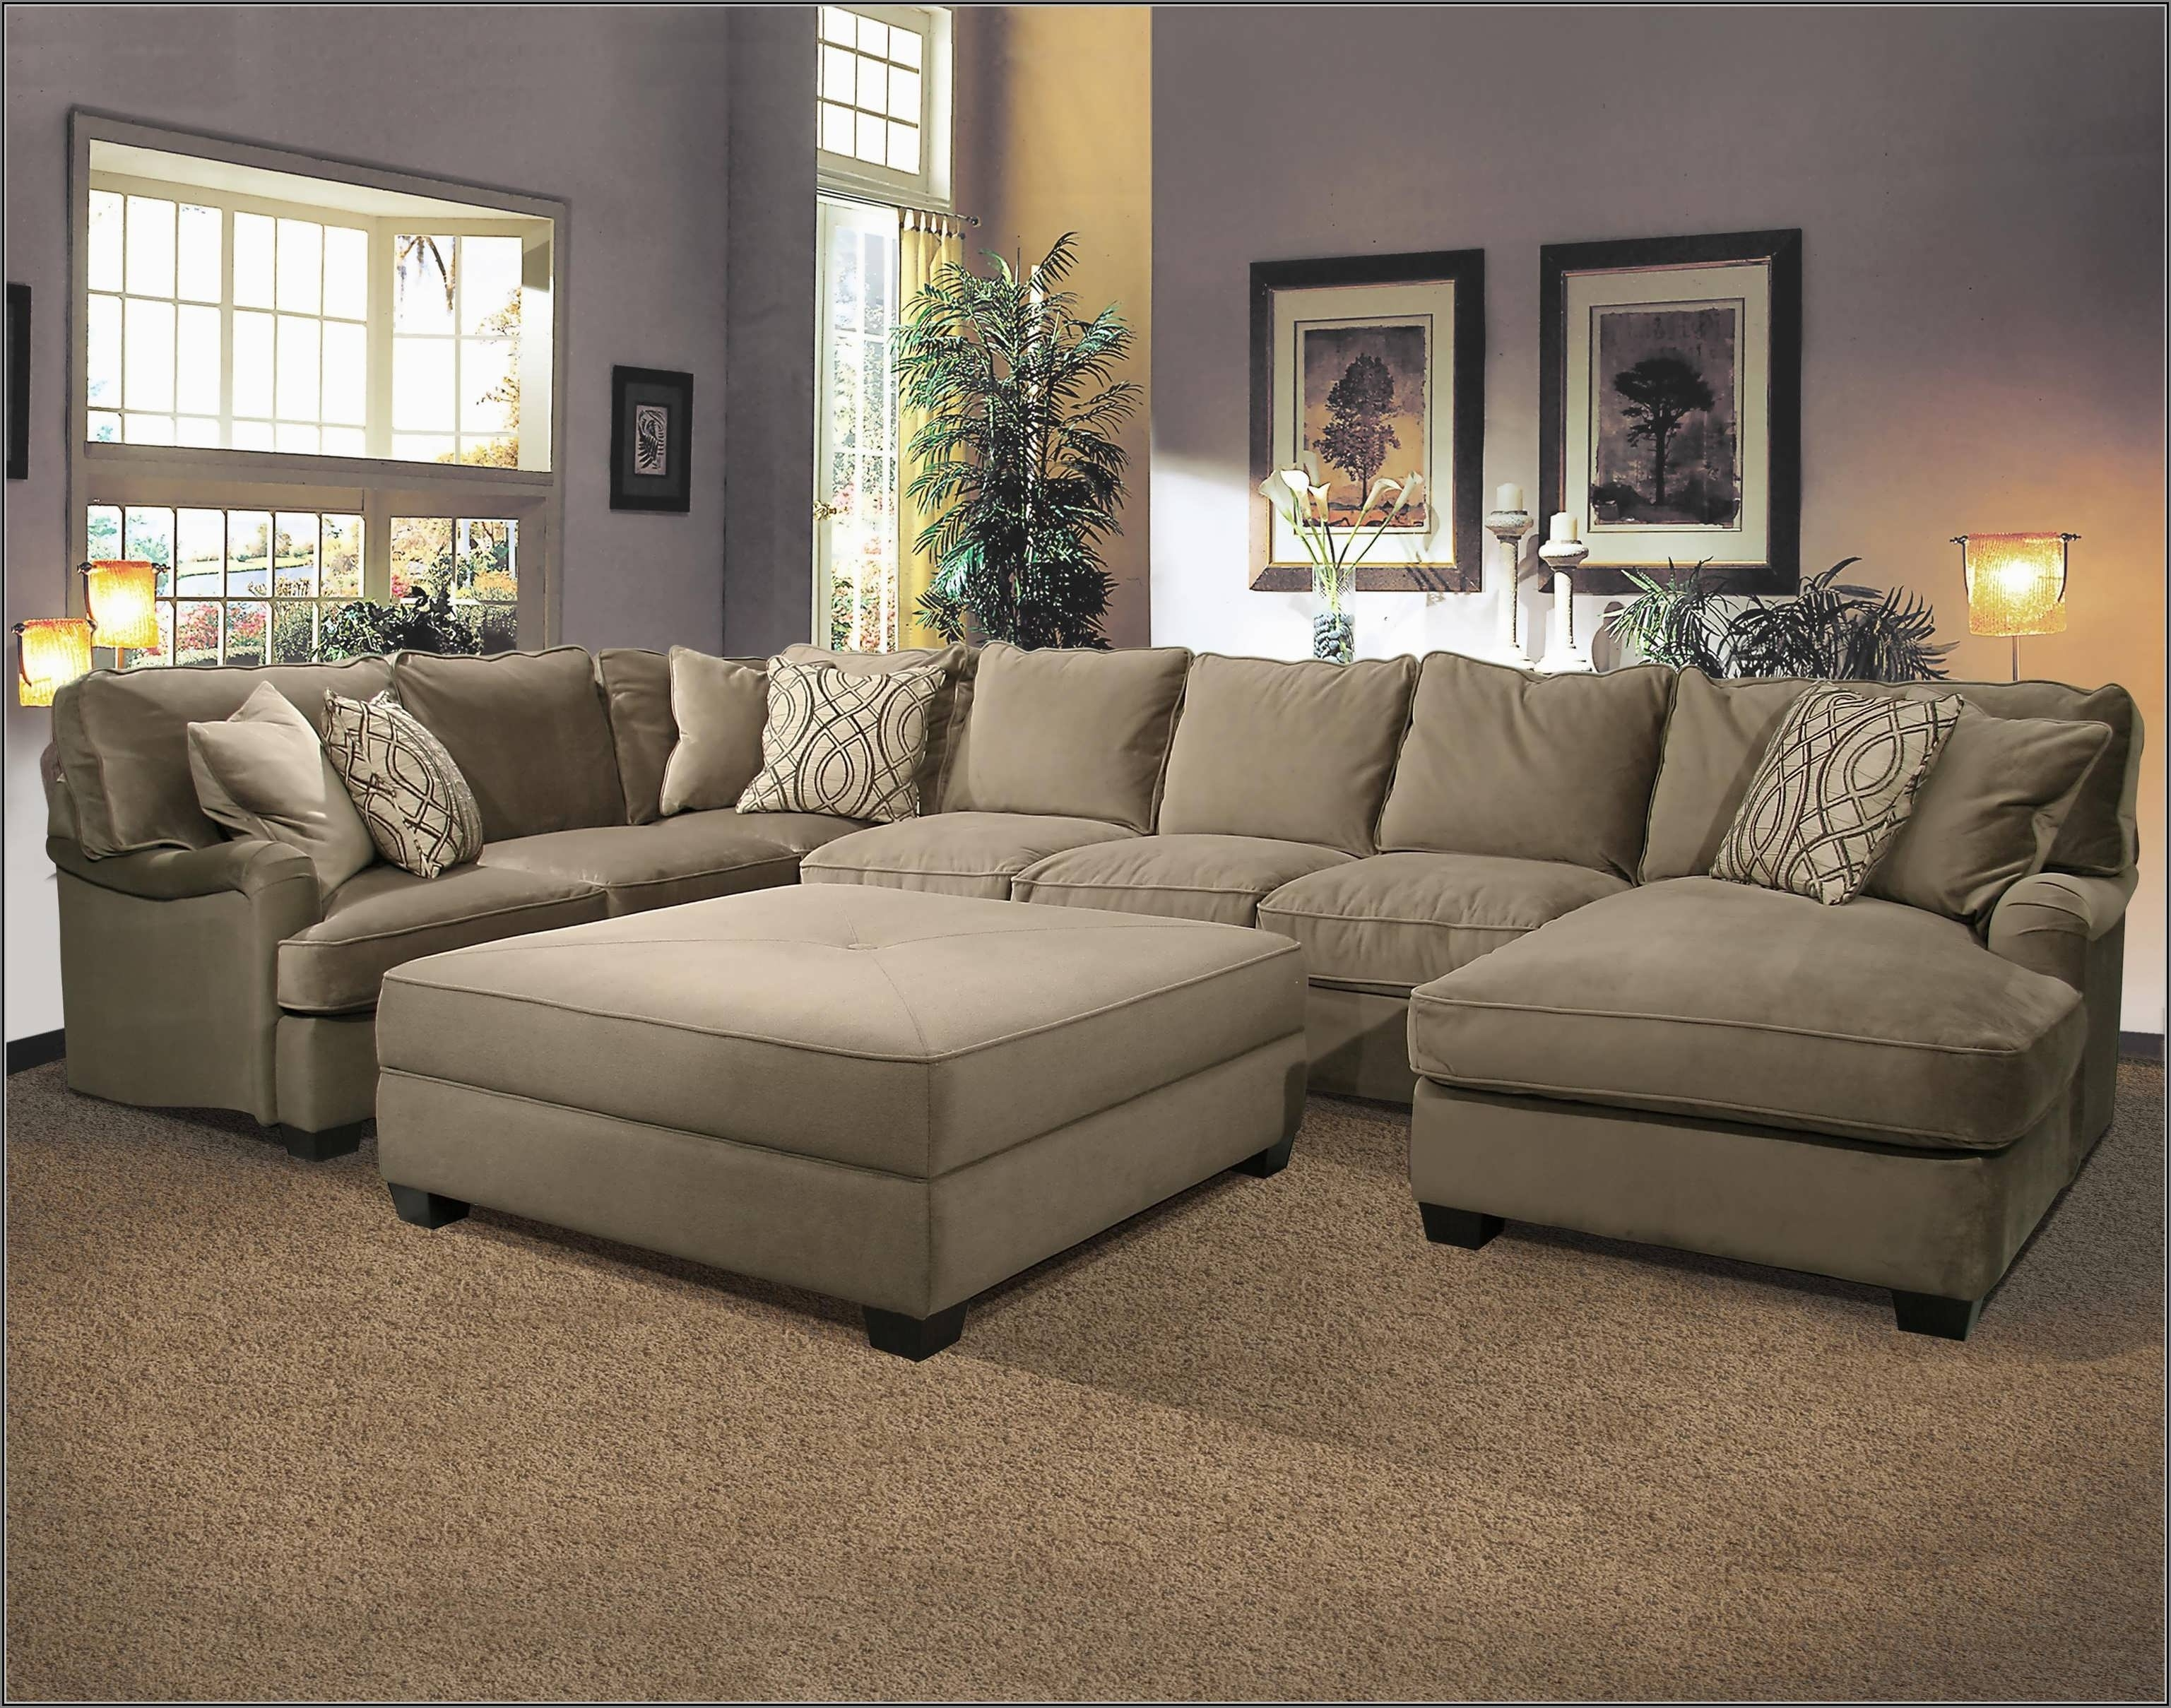 Livingroom : Marvellous Furniture Designs For Small Living Room Sofa for Philippines Sectional Sofas (Image 5 of 10)